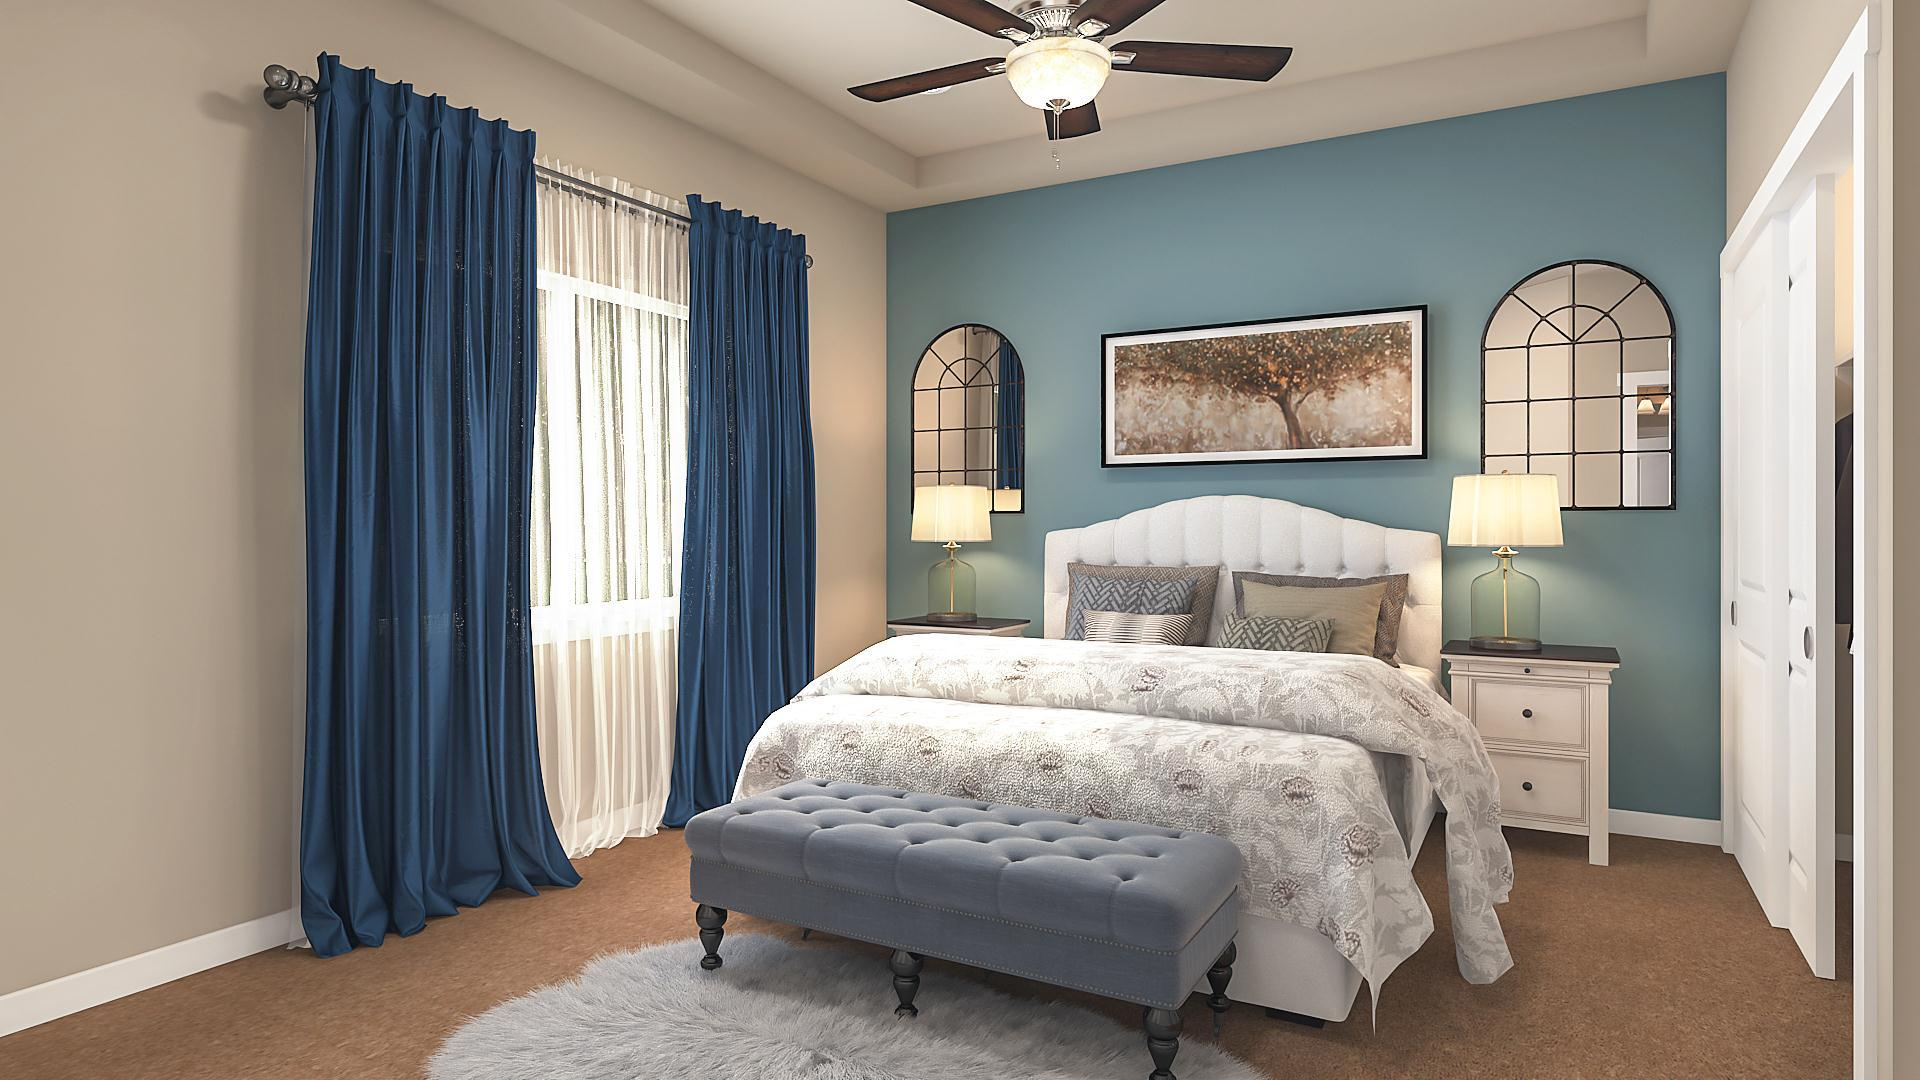 Bedroom featured in the Aster By Carter Hill Homes in Reno, NV